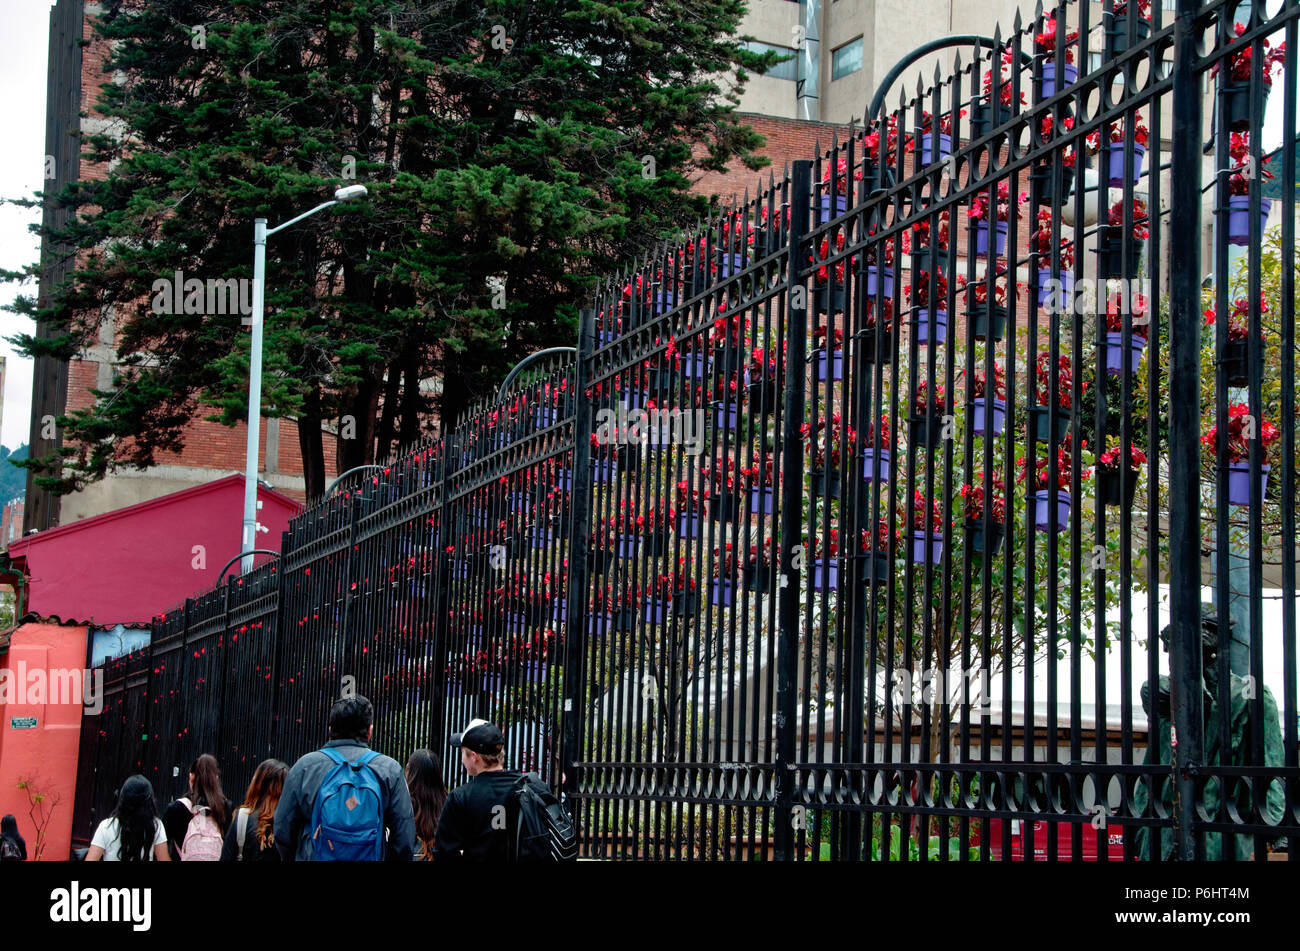 Hanging baskets, or hanging buckets, pots, on railings in Bogota, containing flowers. - Stock Image